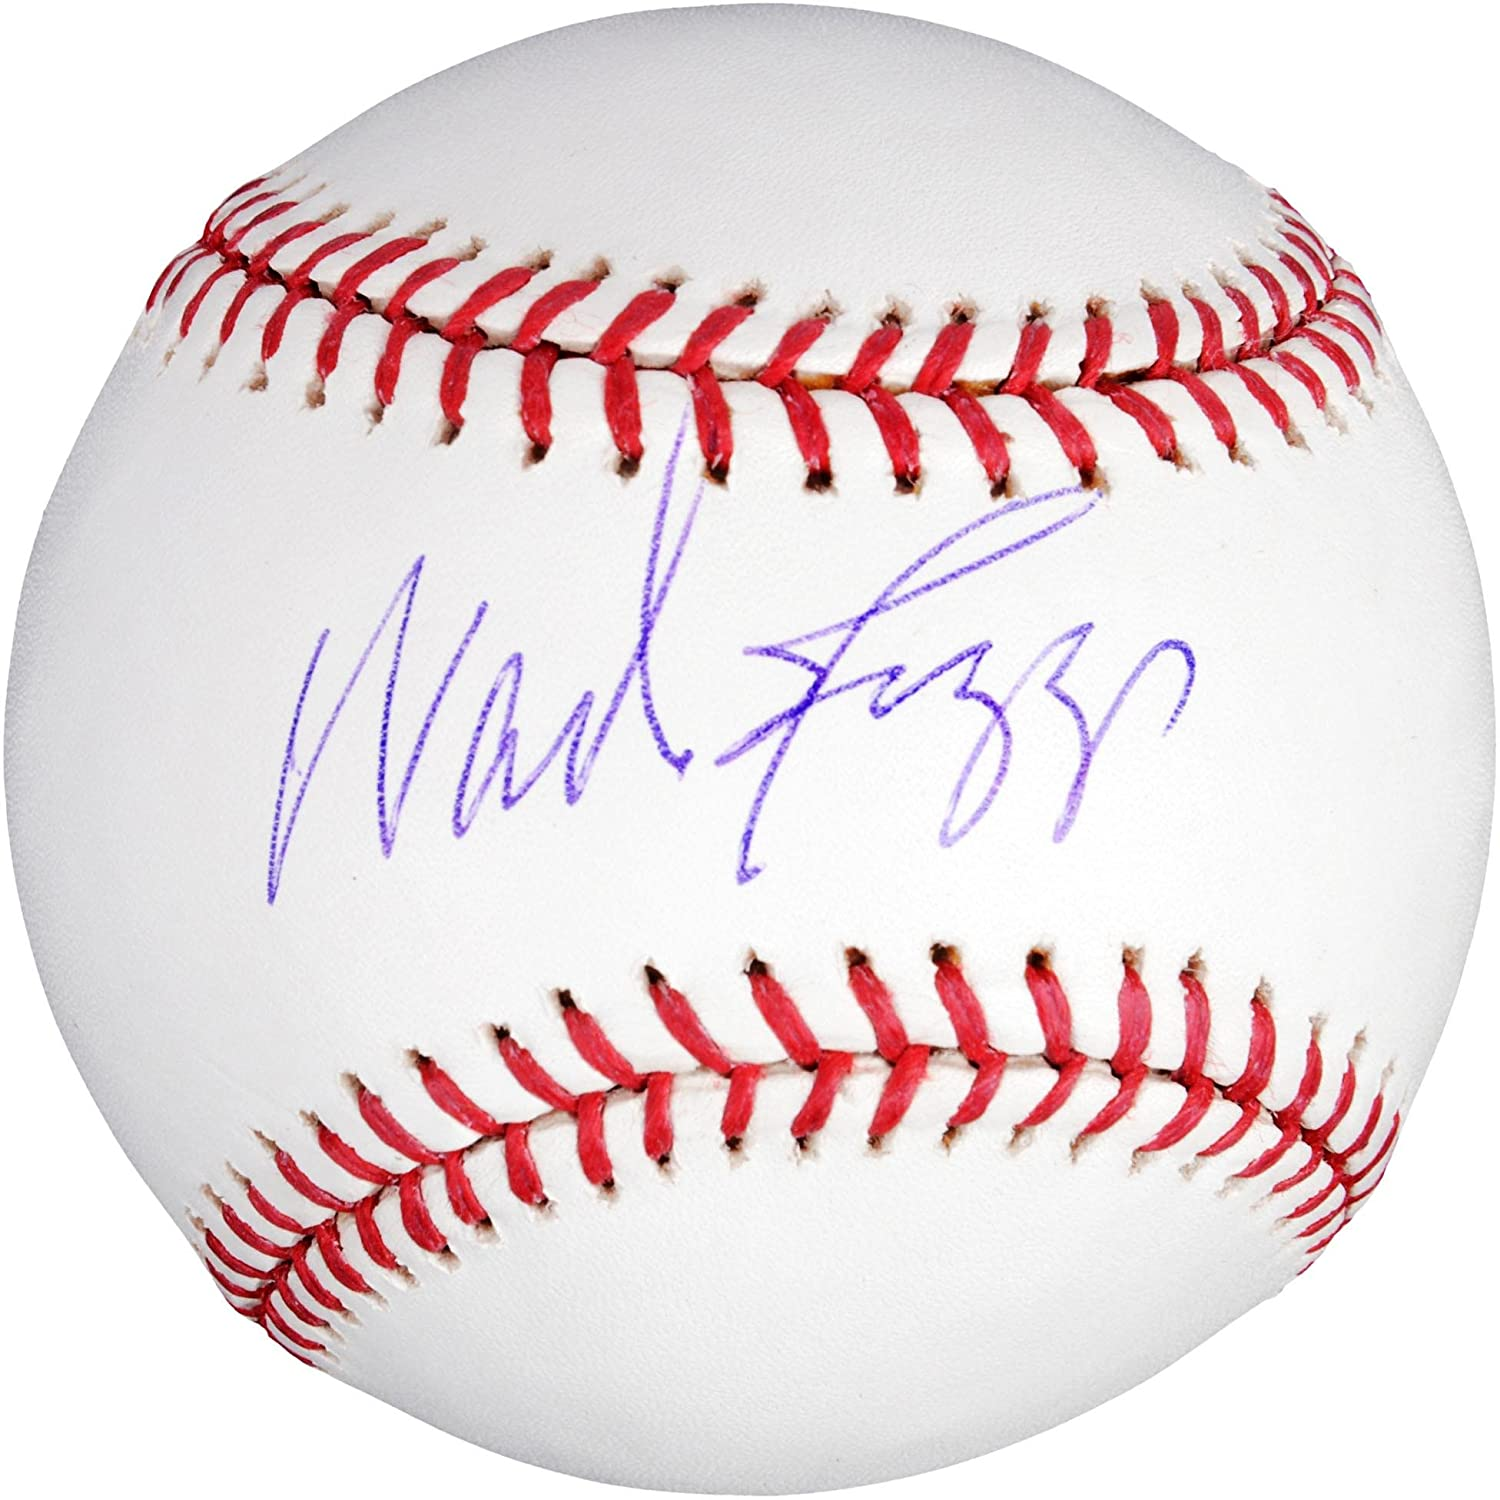 Wade Boggs Boston Red Sox Autographed Baseball - Fanatics Authentic Certified - Autographed Baseballs